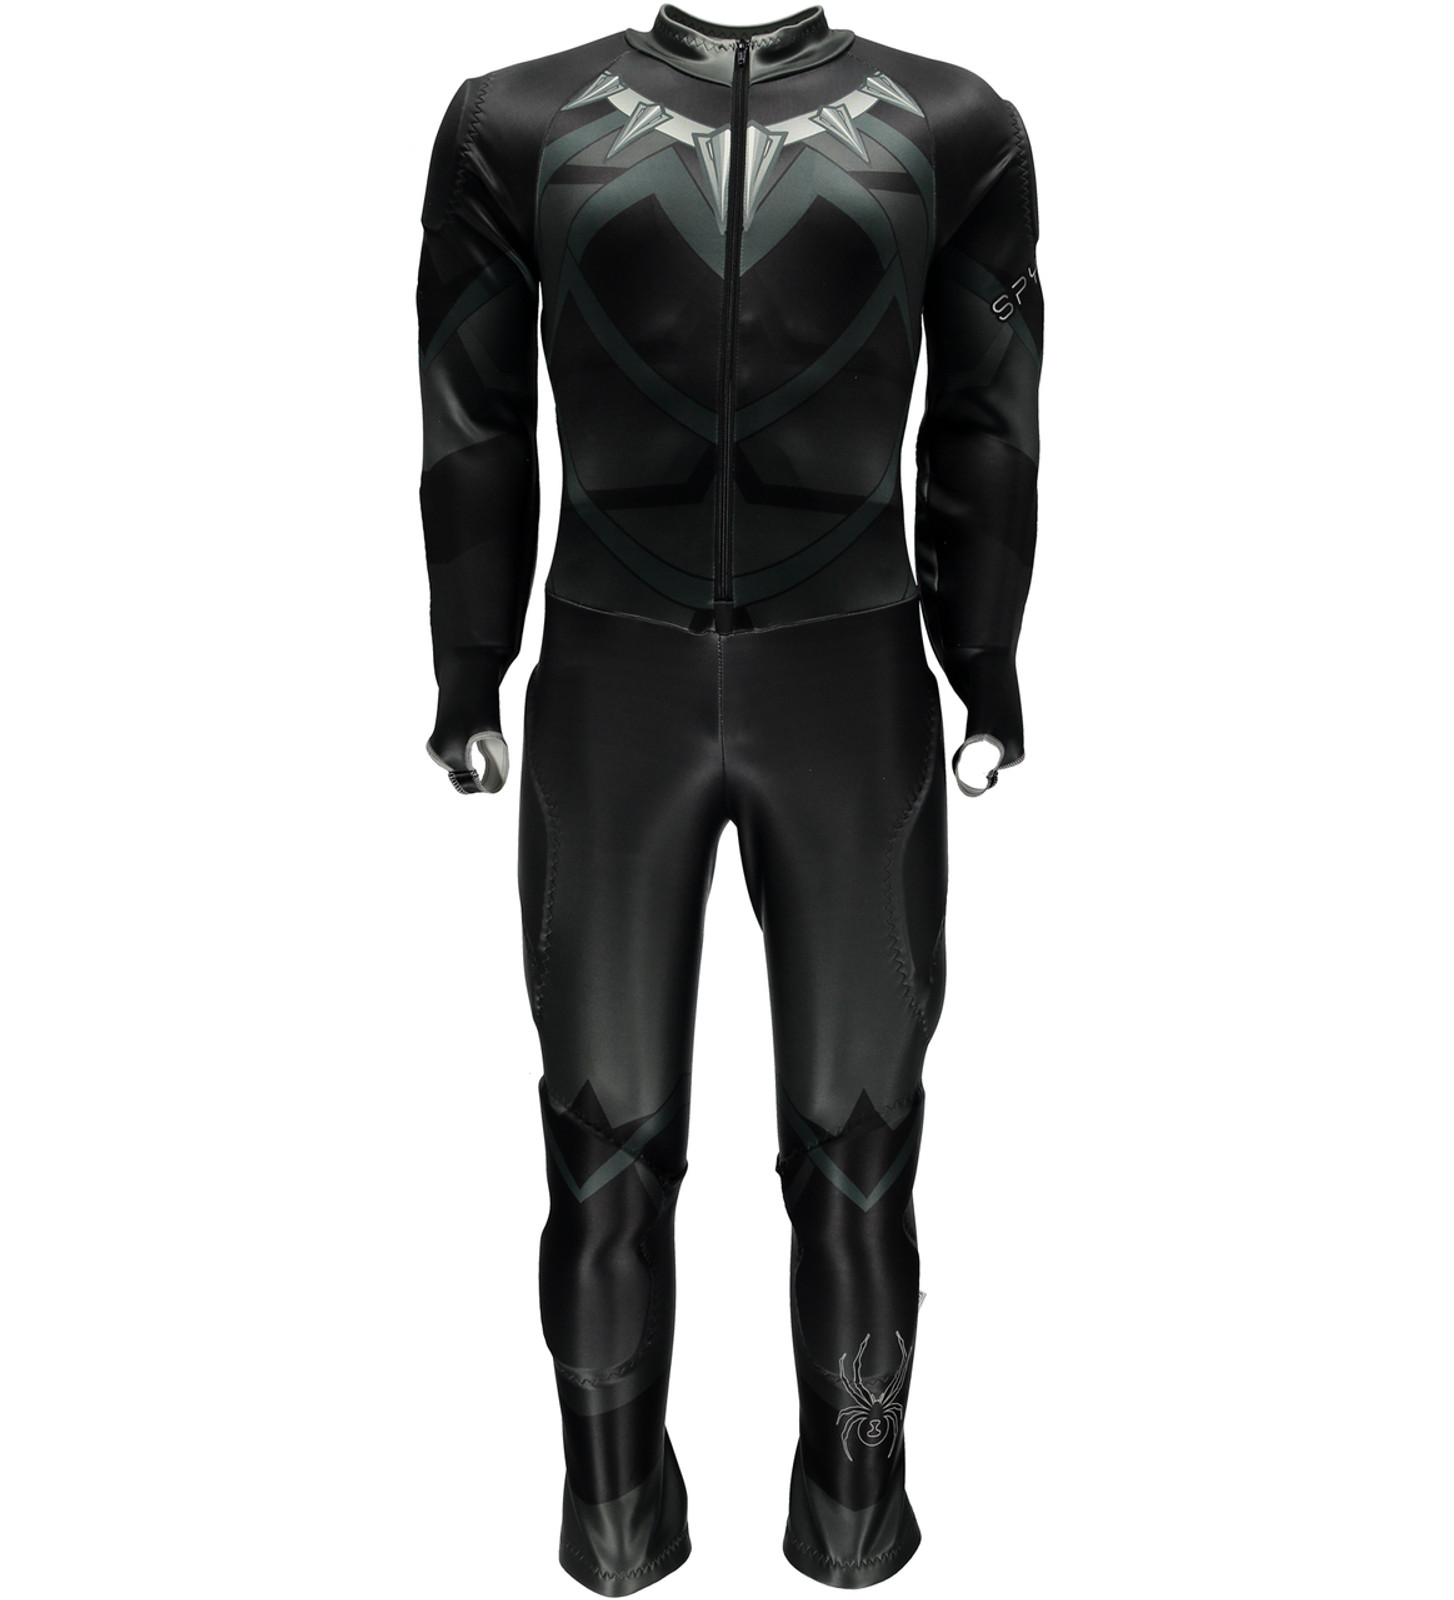 SPYDER MEN'S PERFORMANCE MARVEL GS RACE SUIT